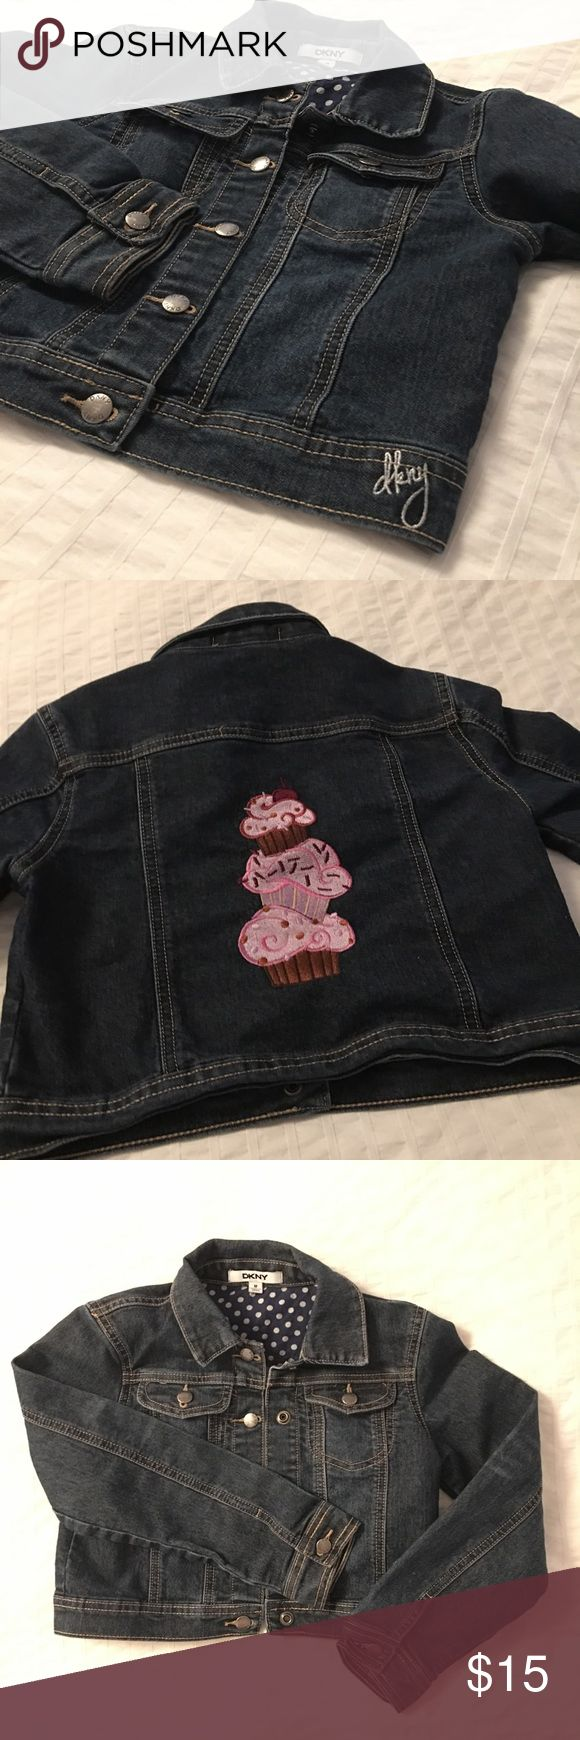 "💖 Girl's DKNY Jean Jacket Super sweet jean jacket for a young girl, with embroidered cupcakes on the back! 😍 Put your cutie in some bright skinny jeans and flats and a tshirt with this jean jacket and she's looking adorable! Hardly worn, clean and in LIKE NEW, EXCELLENT condition. 💗  👔Materials 100% Cotton  📏Size/Measurements M (Girl) • Shoulder to Hem: 13"" • Arm Length: 19.5"" • Pit to Pit: 14""  🌟Bundle 2 or more items and save 15%!  📸 Follow me on Instagram @cubbycreekboutique DKNY…"